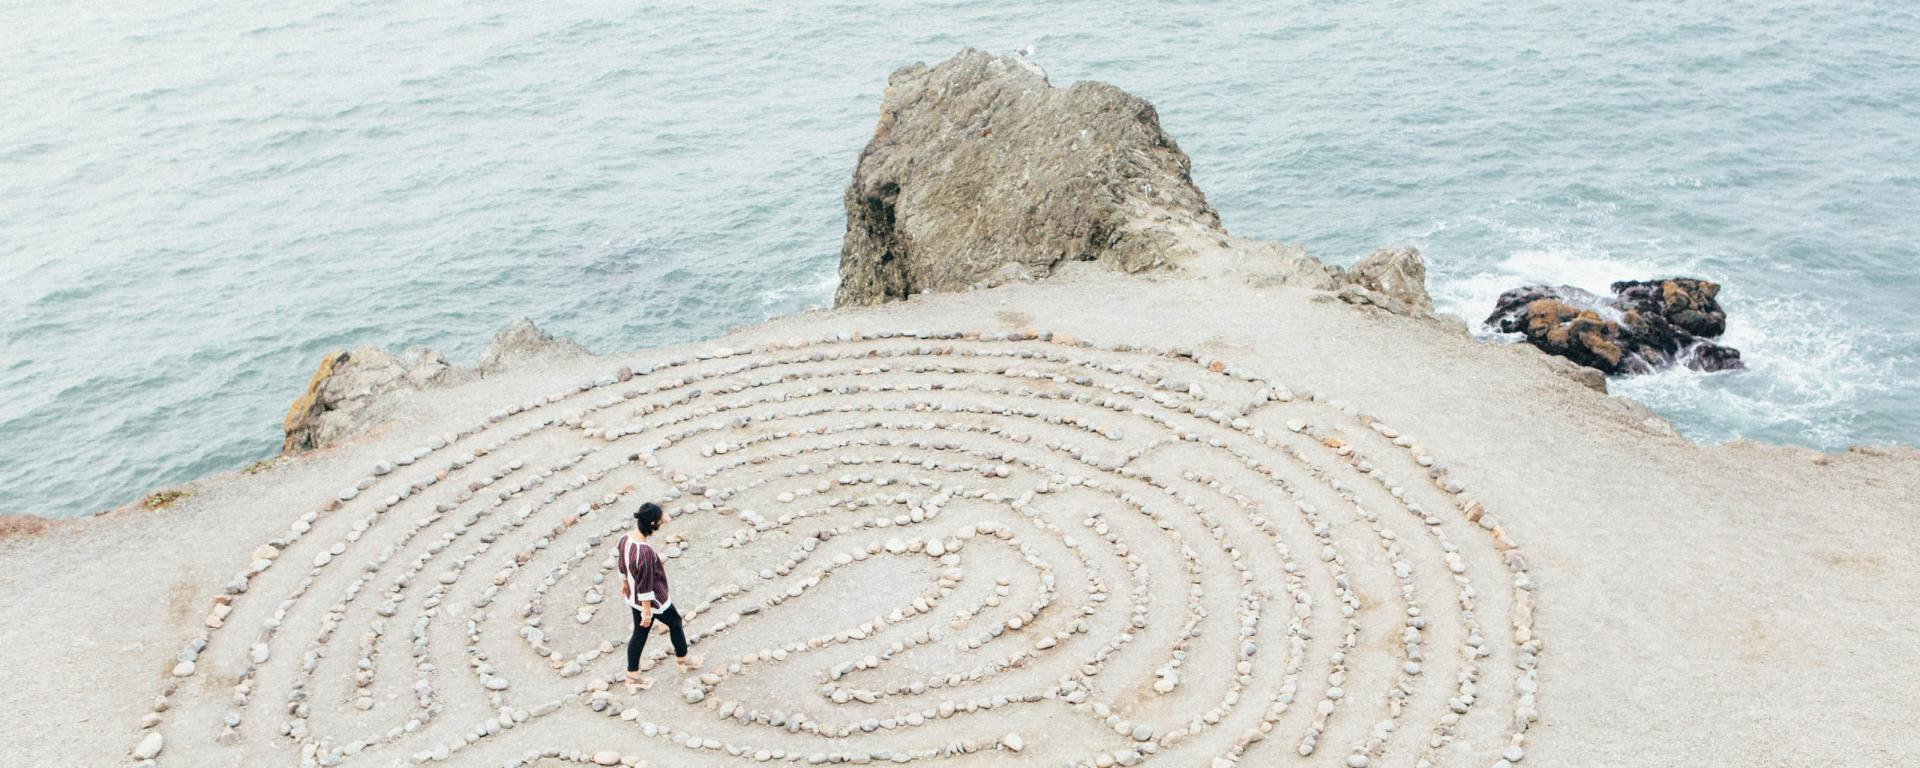 person walking through a circular stone maze in the sand by the ocean